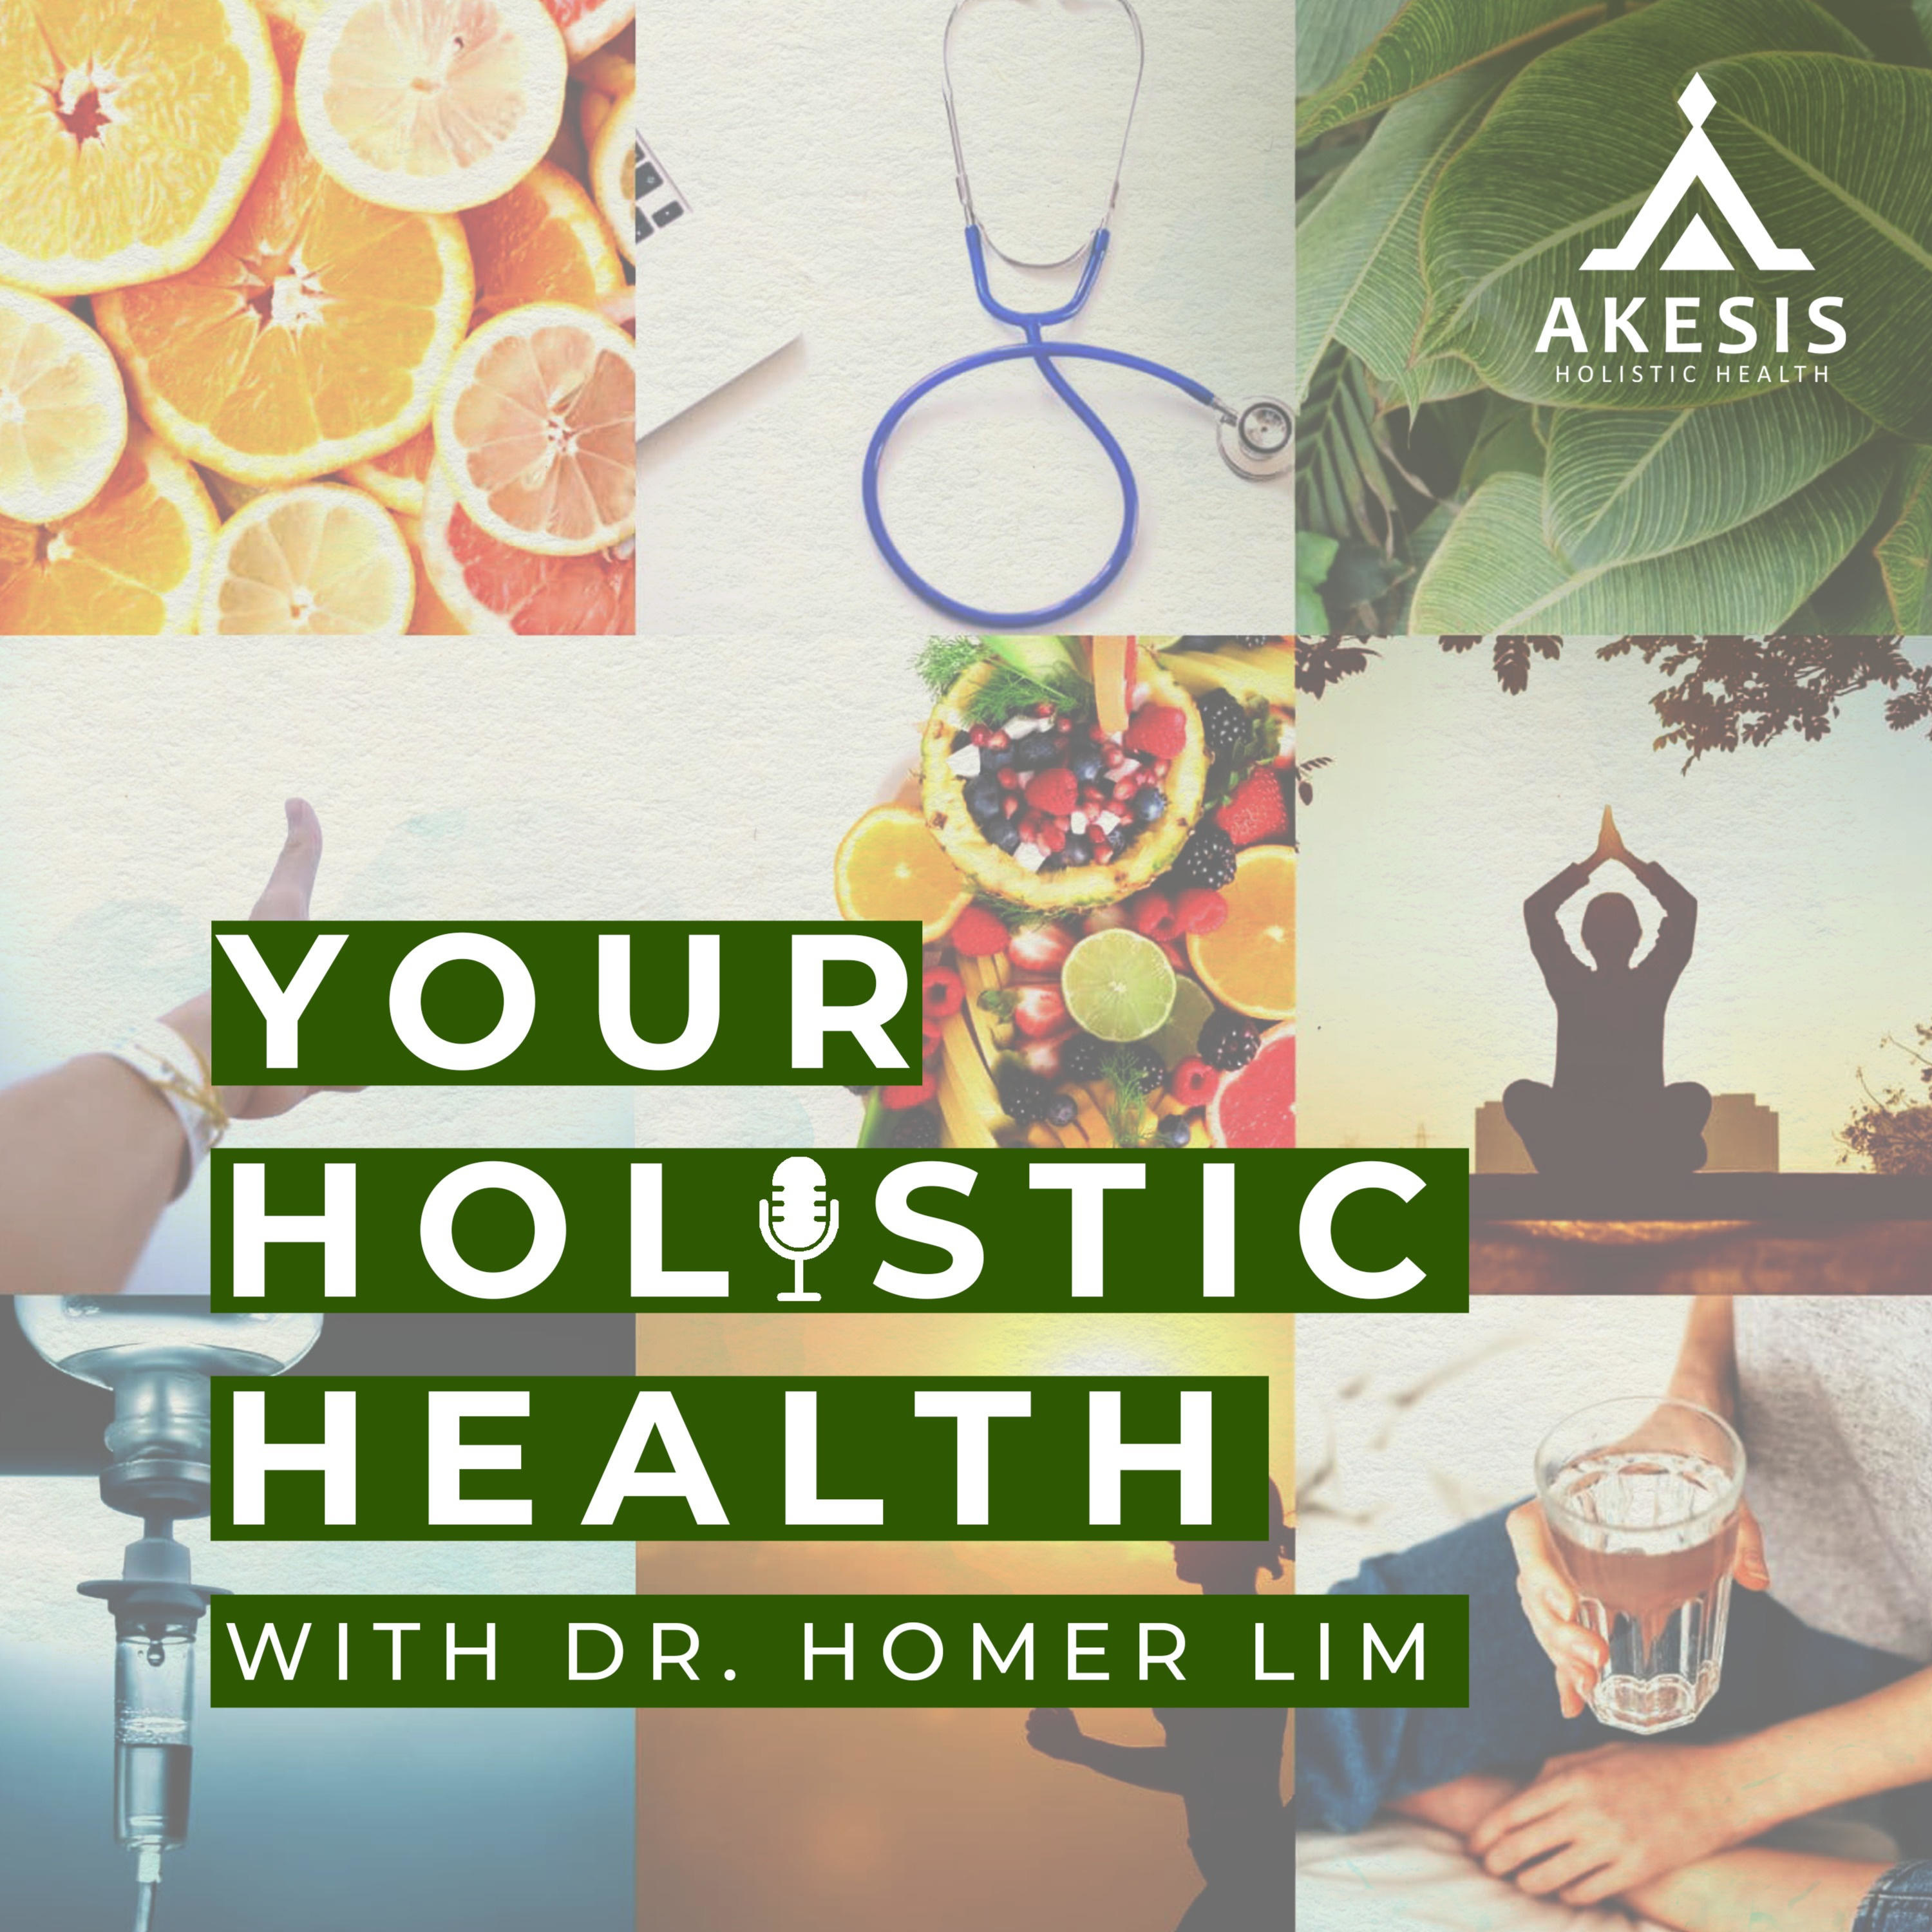 Your Holistic Health with Dr. Homer Lim